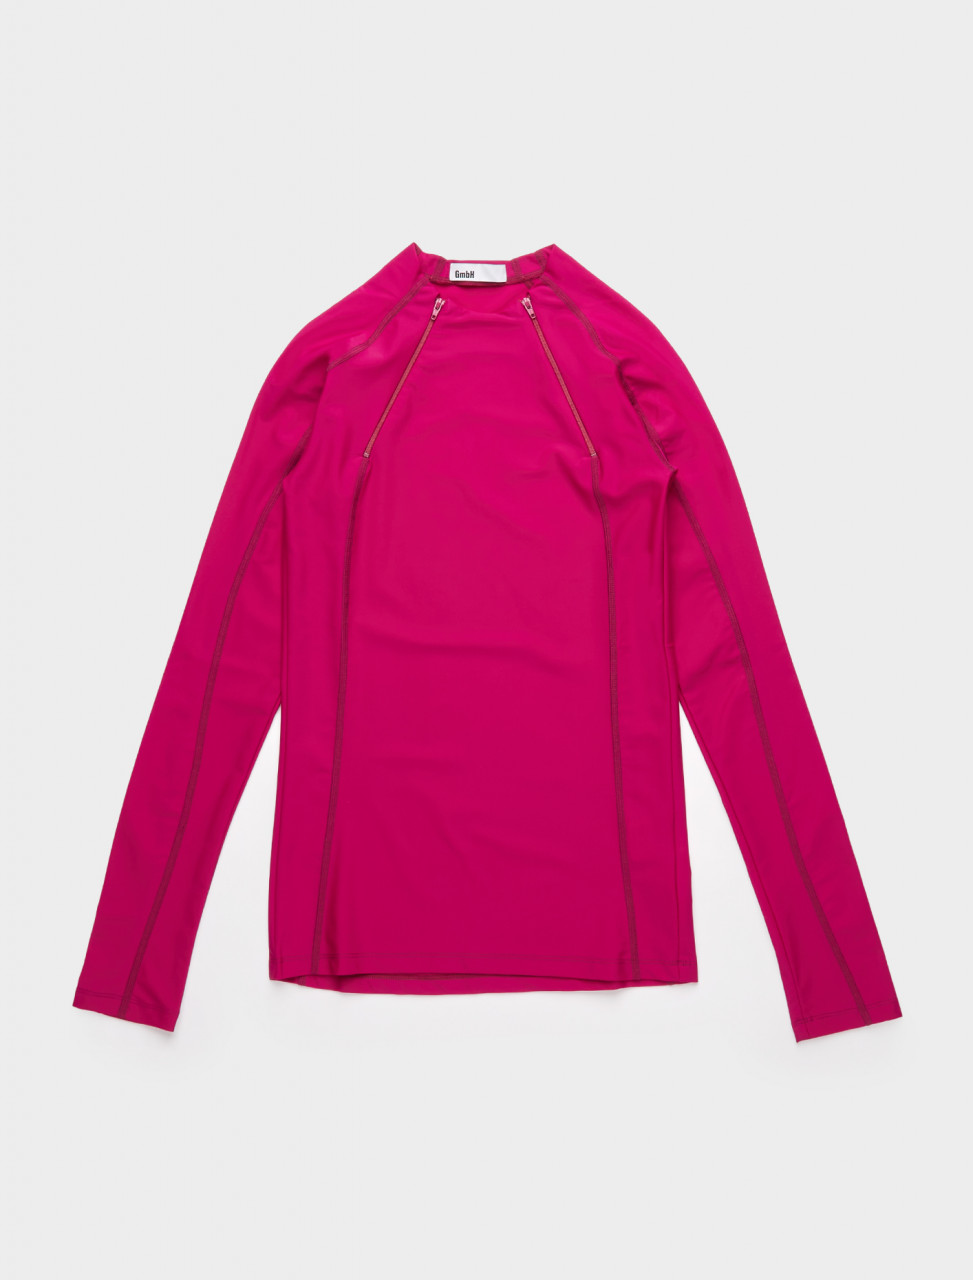 226-ANDE-AW20-P GMBH ANDE LONG SLEEVE TOP PURPLE